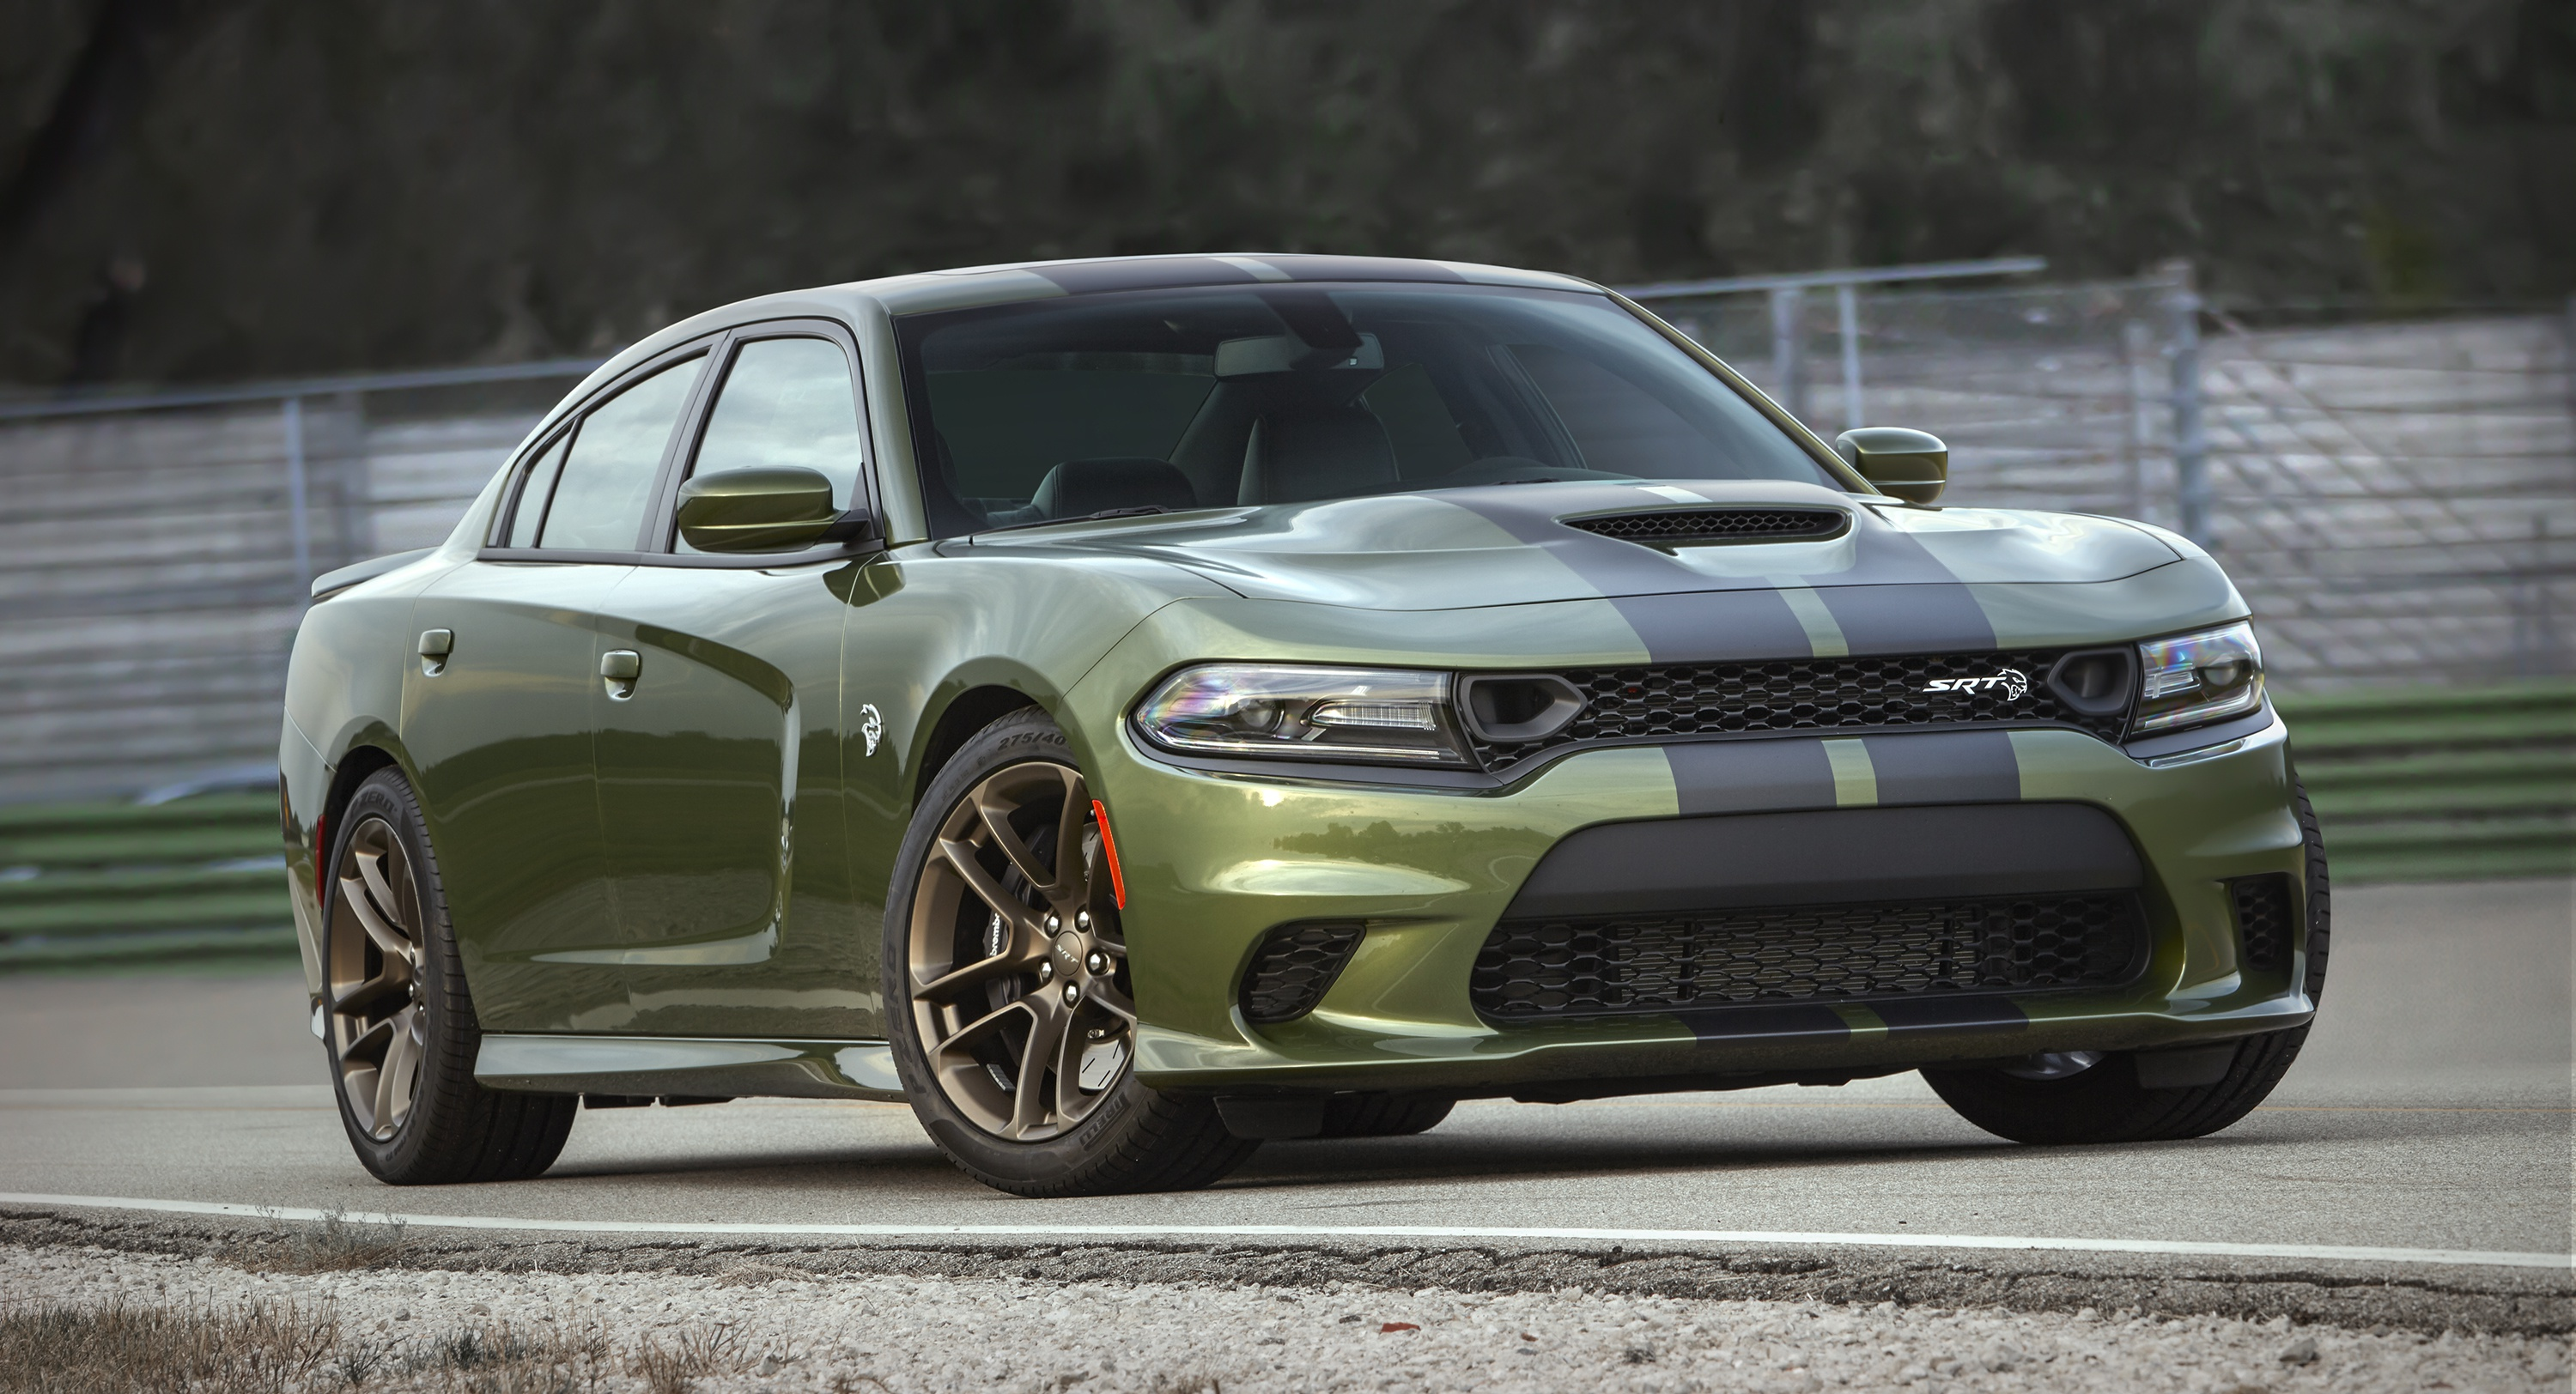 Dodge Dodge Charger Muscle Car Green Car 3000x1624